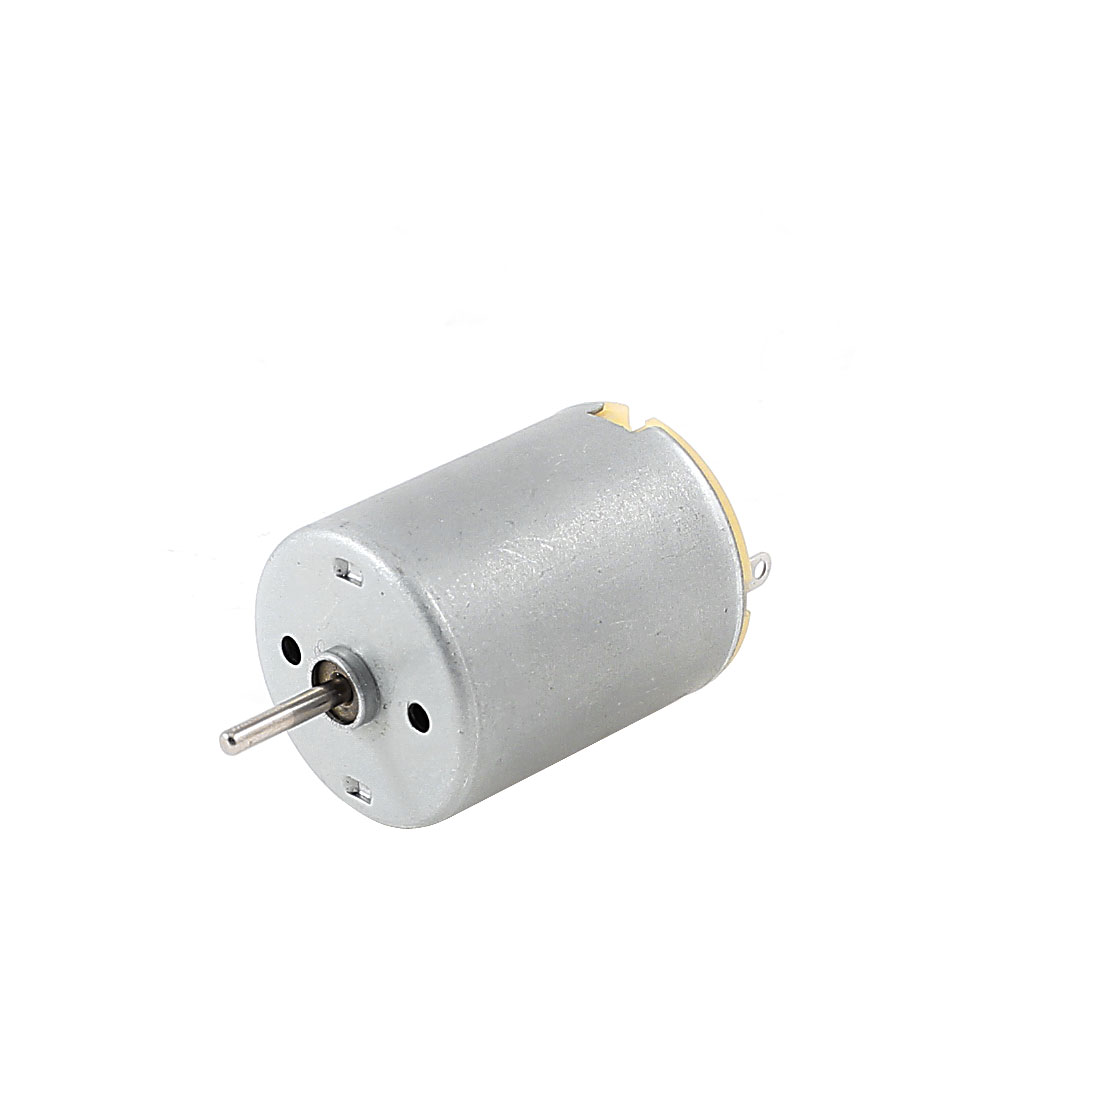 Silver Tone 13500-16800RPM 2mm Shaft High Torque Mini Micro Motor DC 7.2-9V